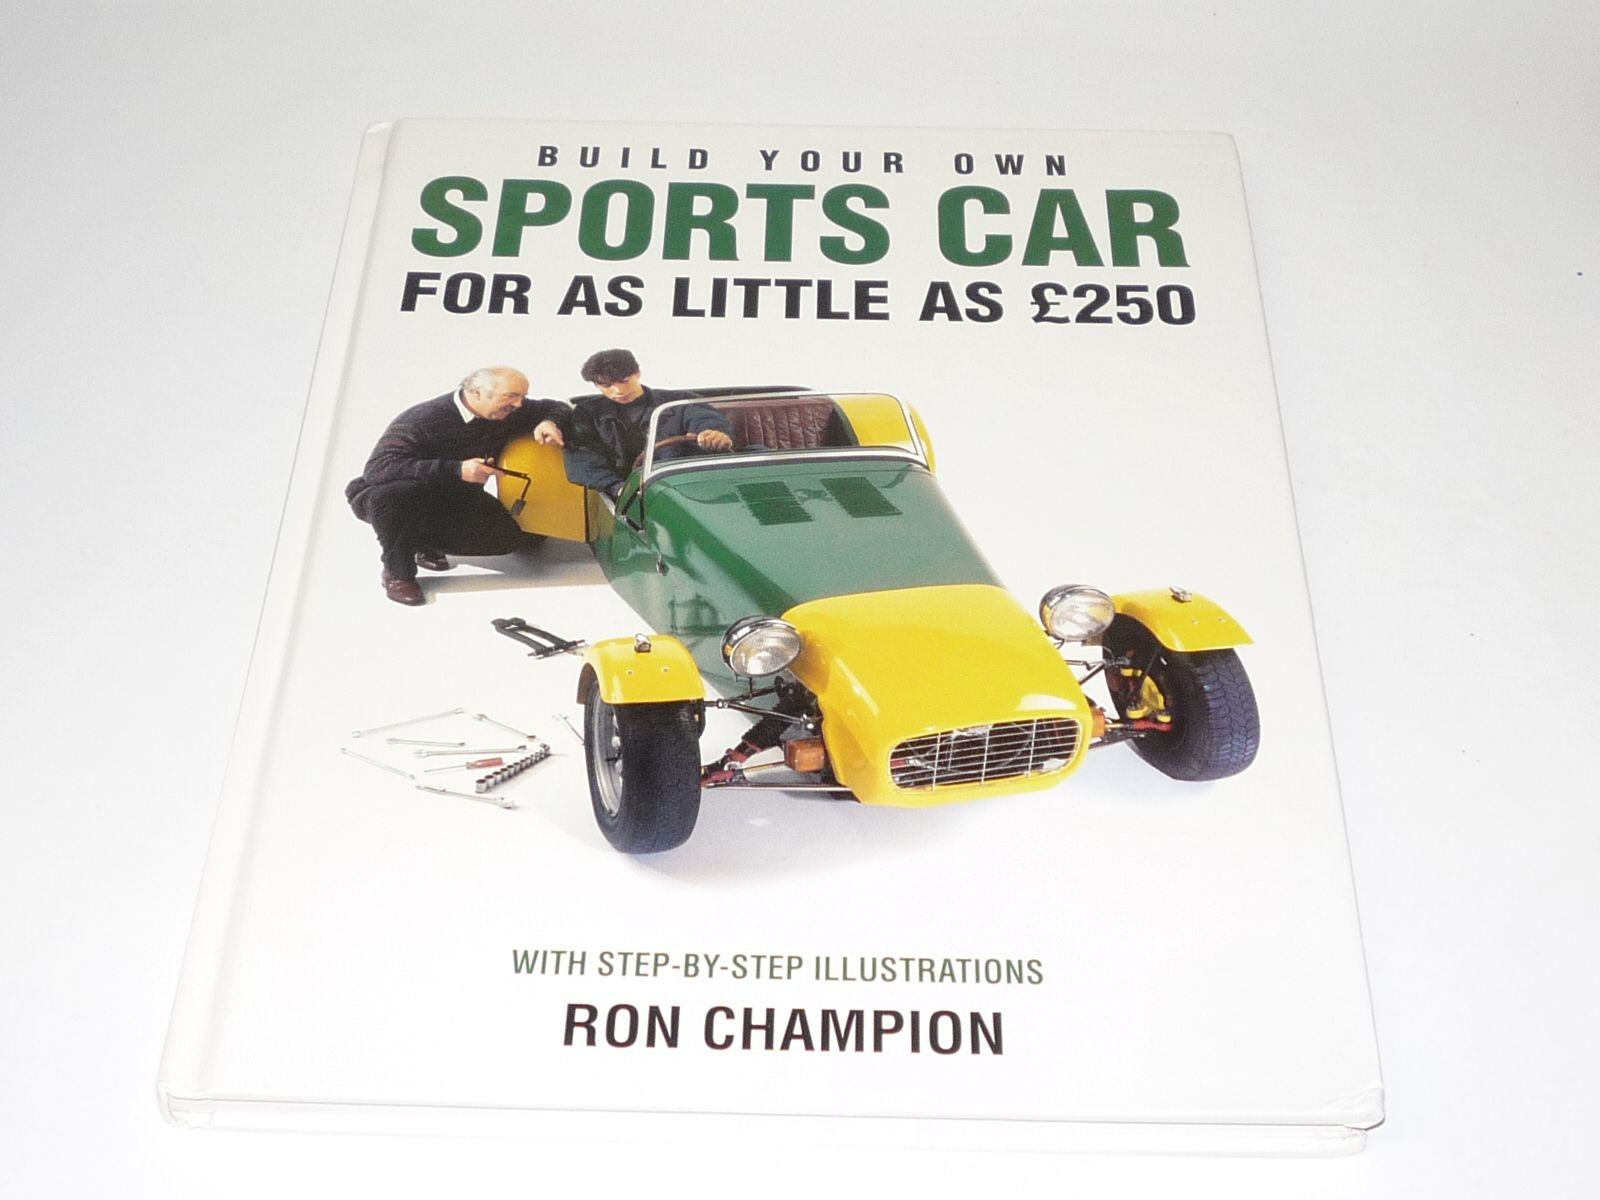 Exceptional Build Your Own Sports Car For As Little As £250 (Champion 1996)